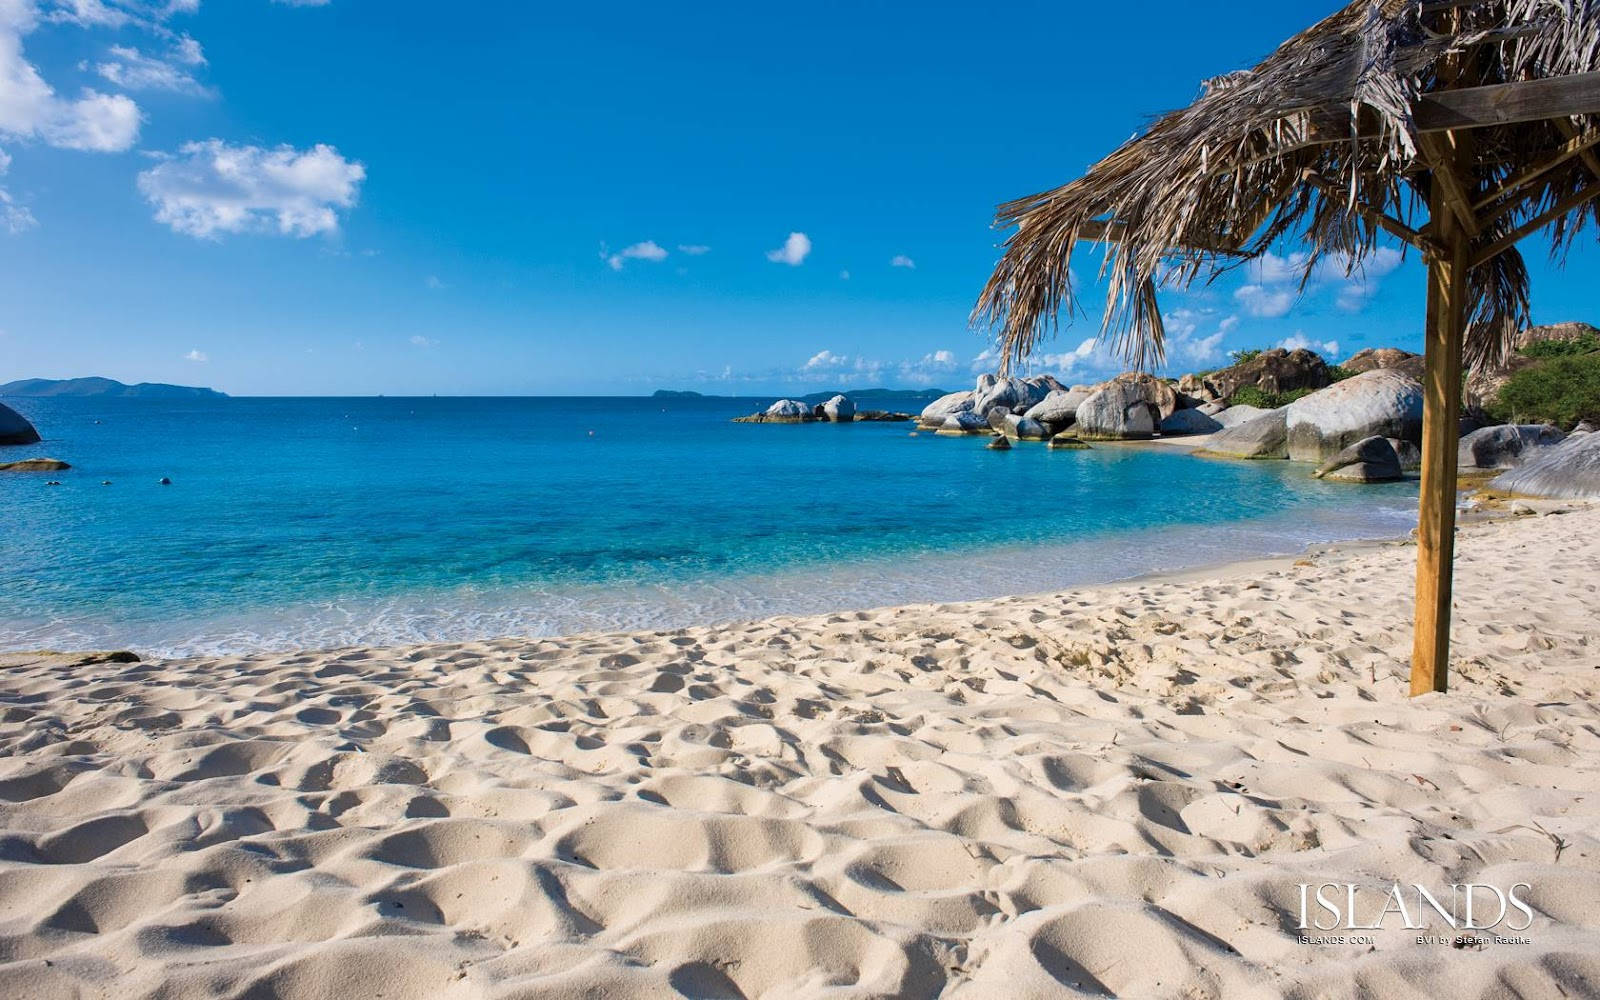 moving beach backgrounds for wallpaper - photo #35